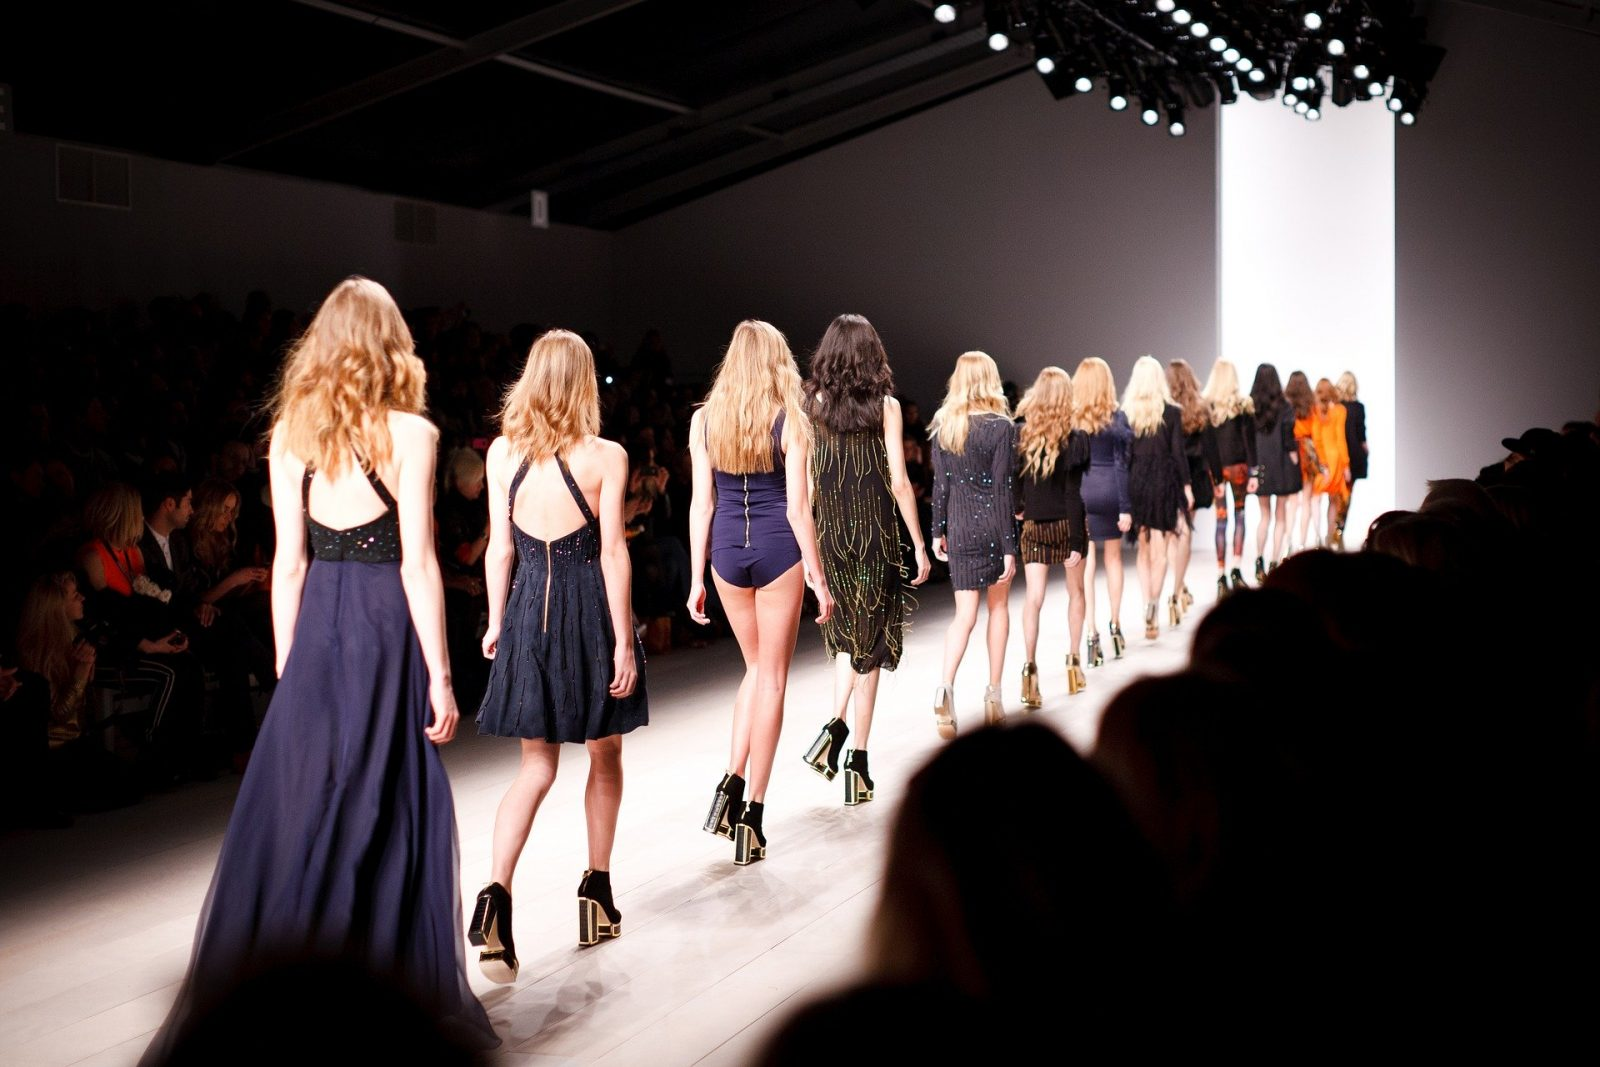 La Fashion Week de Paris fait son grand retour le 28 septembre.